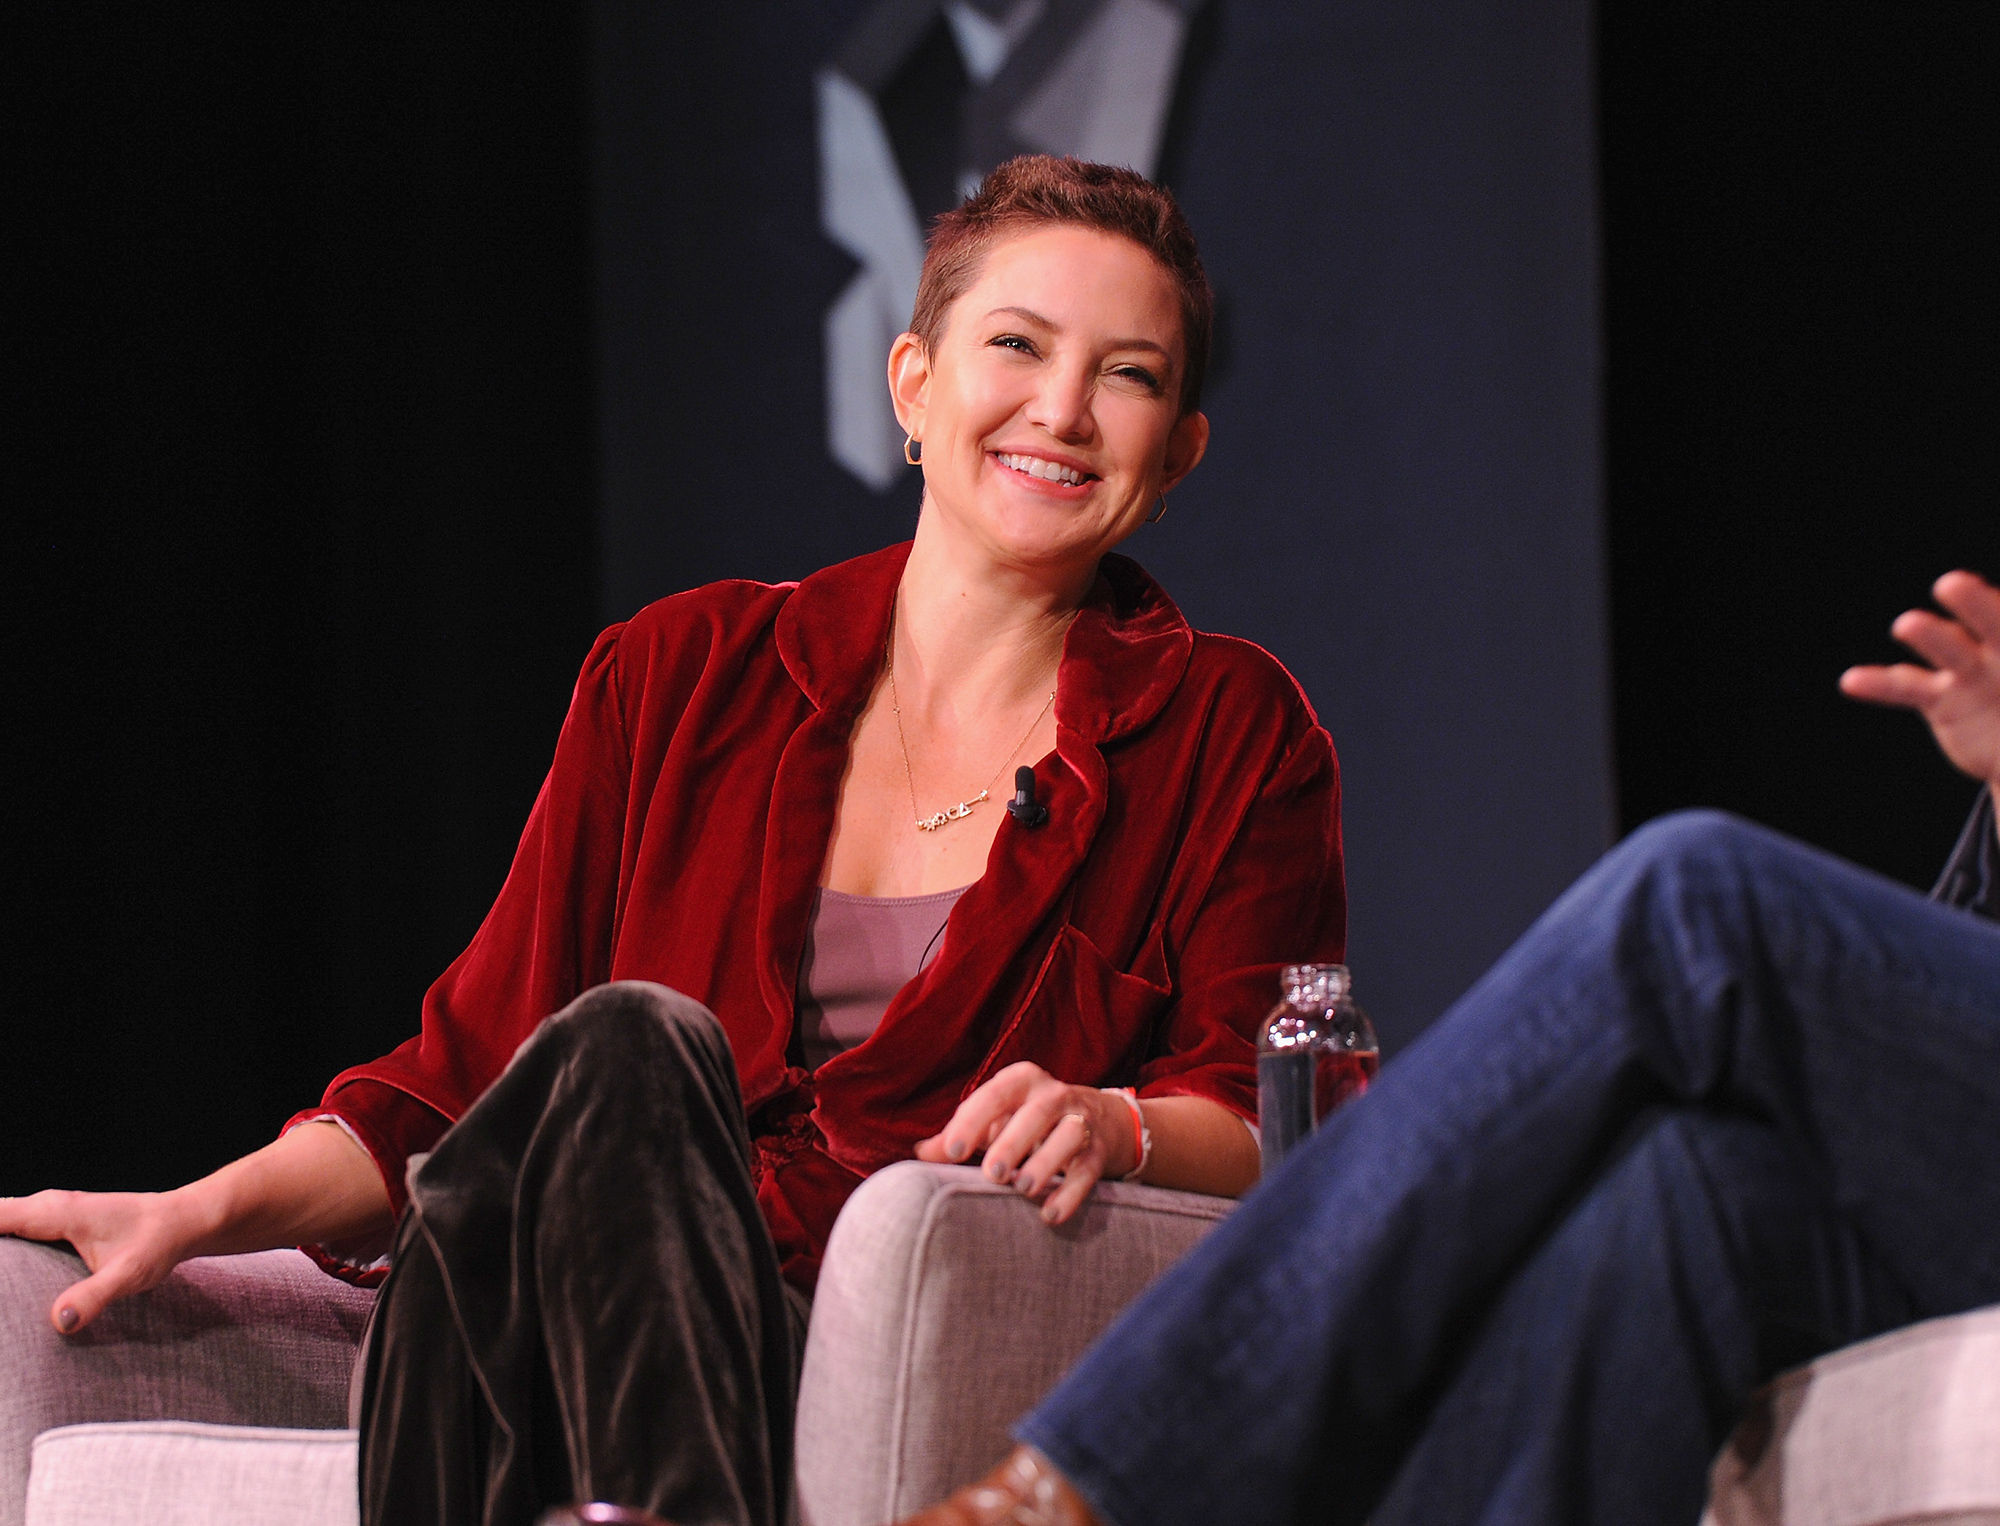 Fast Company Innovation Festival - Listen To Your Customers: Lessons From Fabletics' Kate Hudson And Walmart.com's Marc Lore